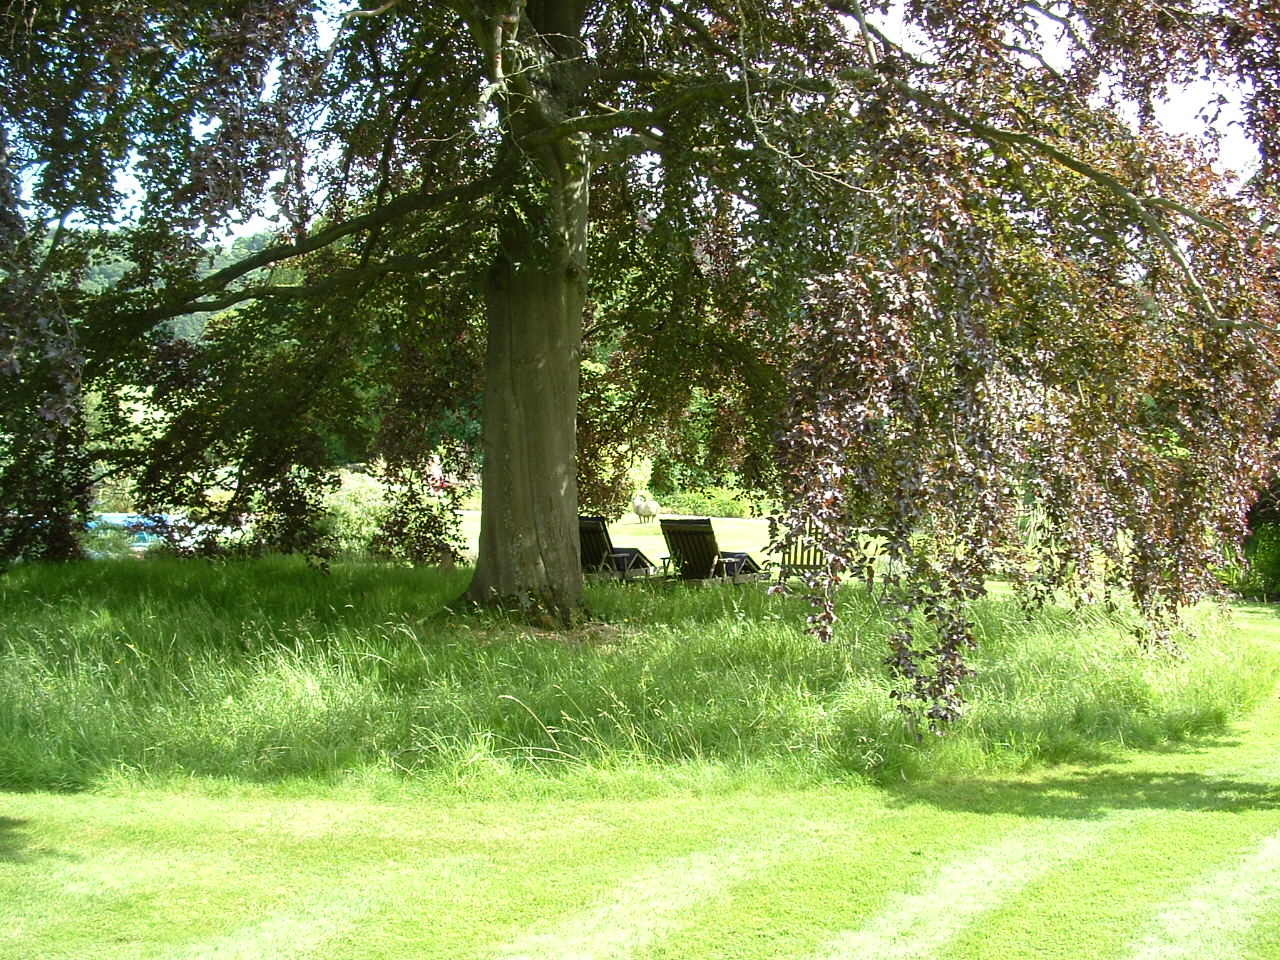 A wonderful mature copper beech with a long grass lawn beneath, a perfect place to sit on a warm day